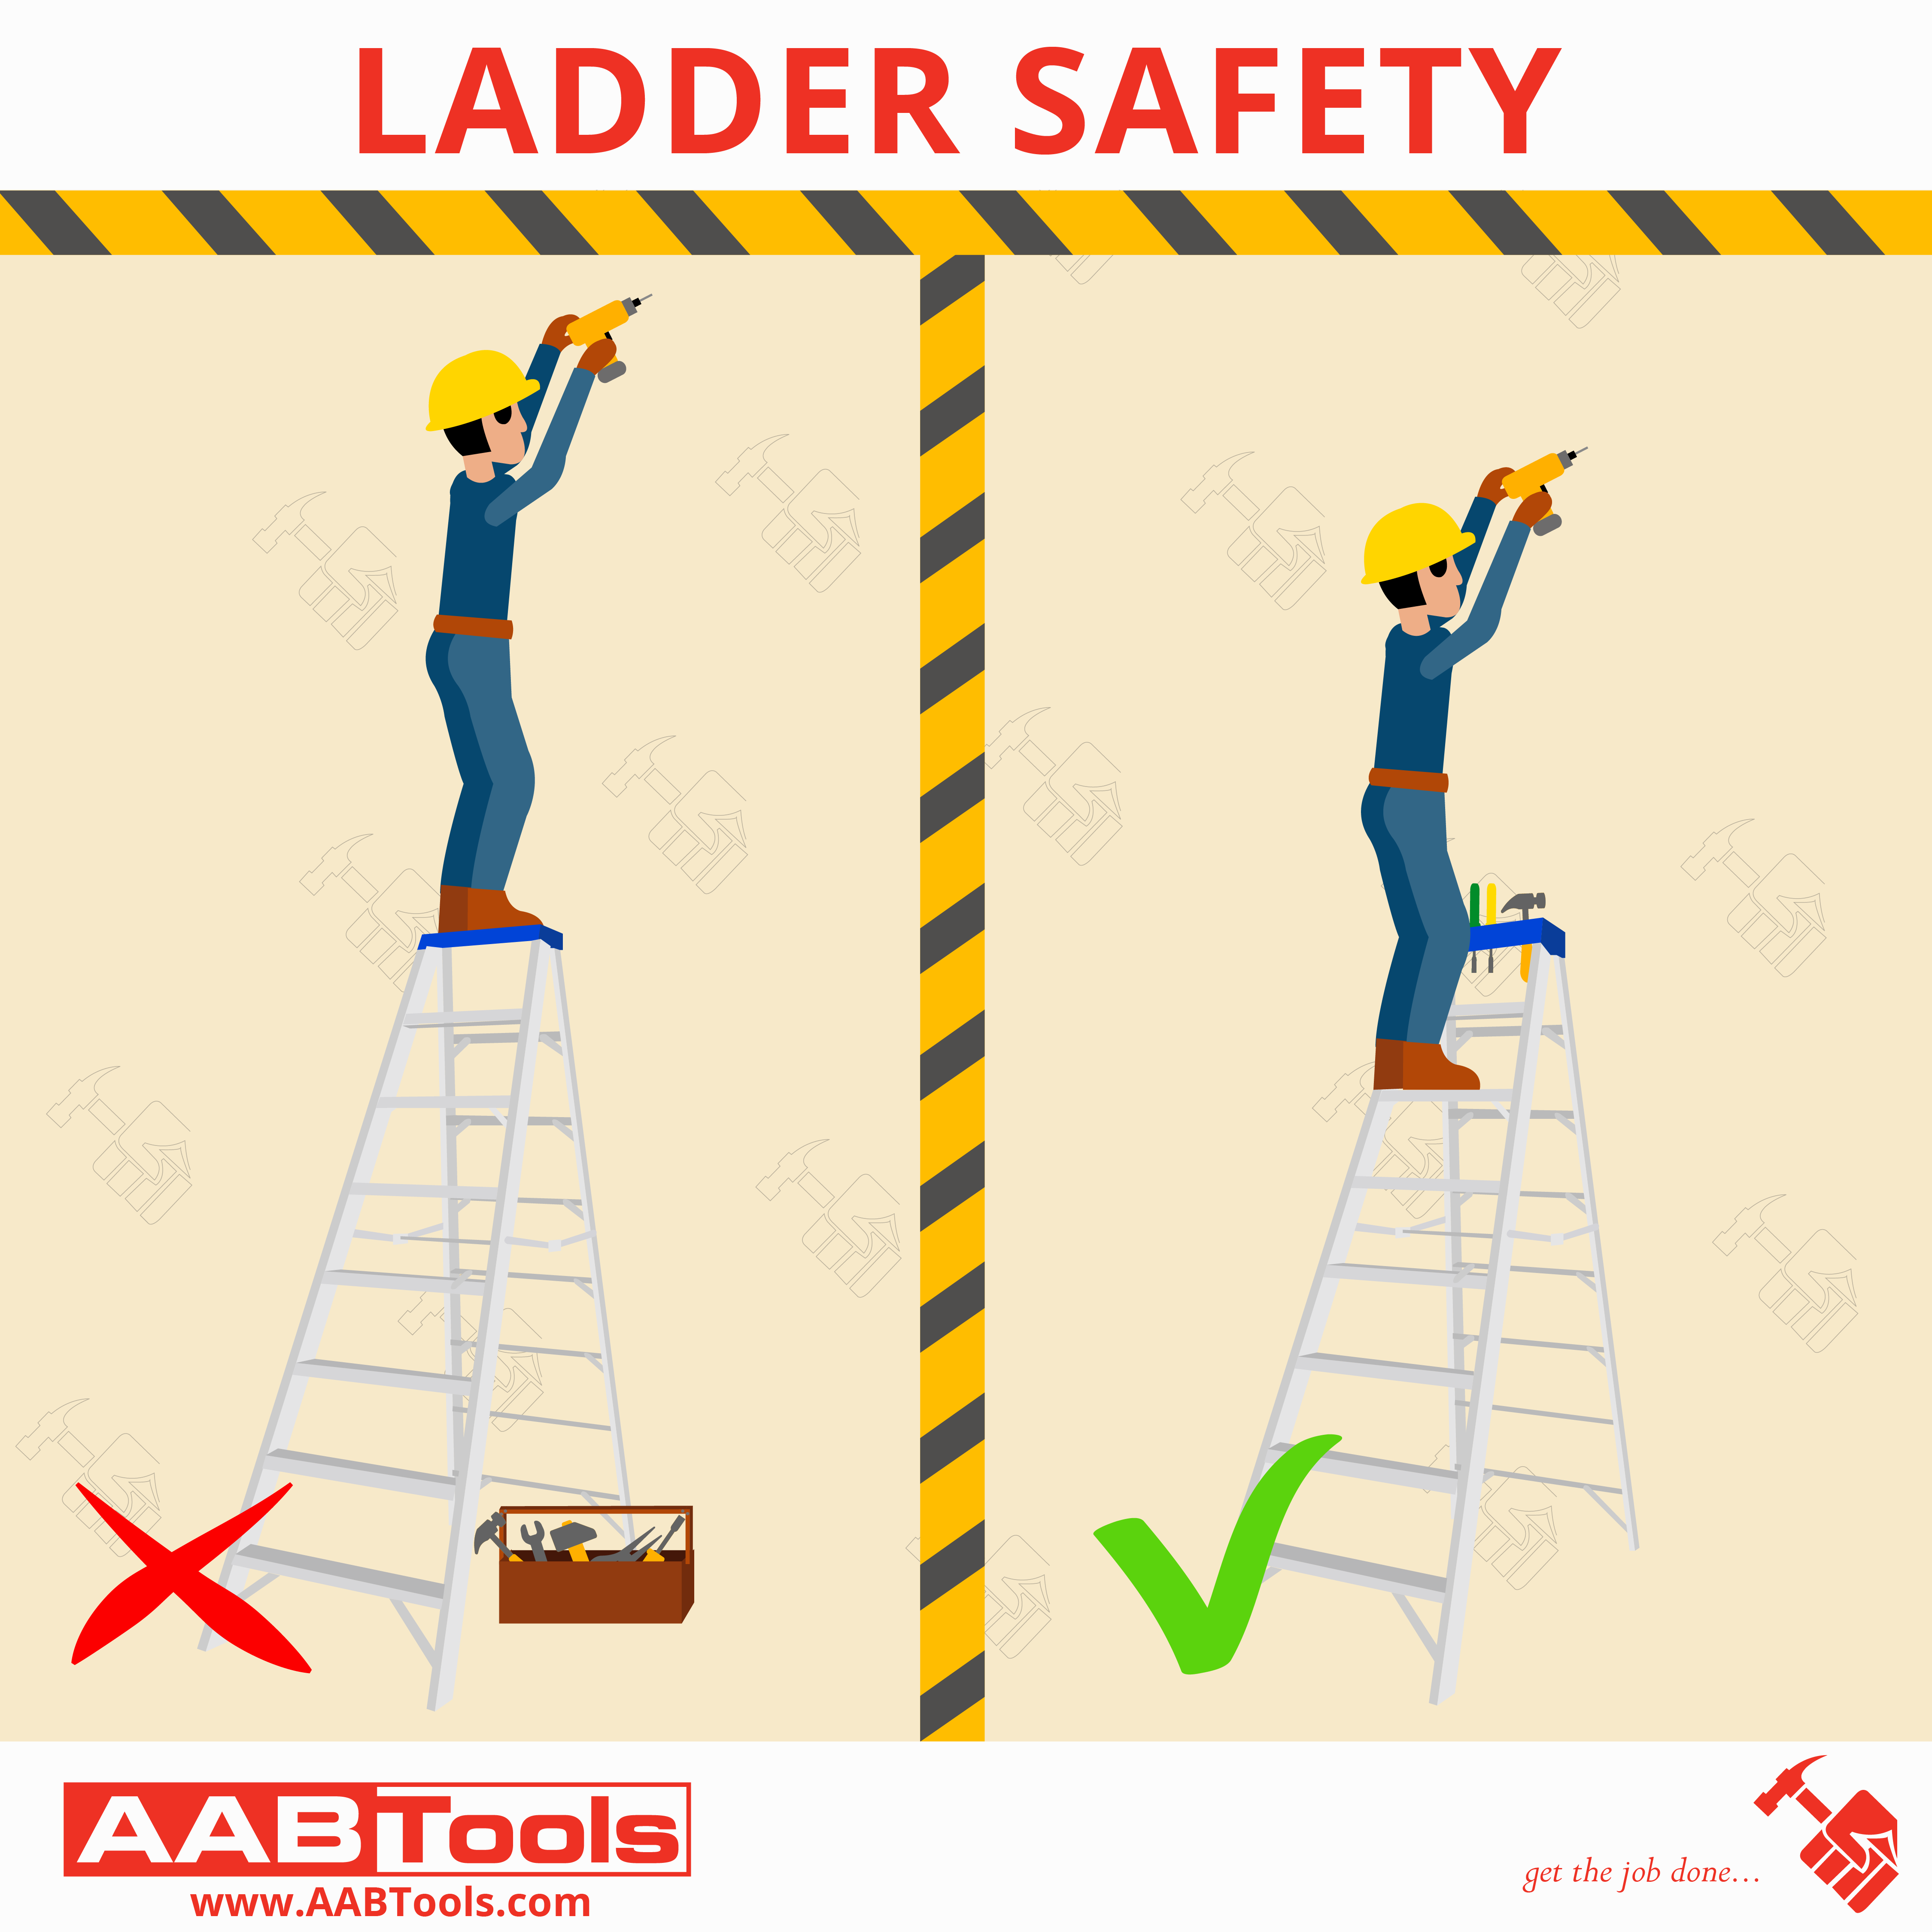 AAB Tools believes that 100 of all ladder accidents could